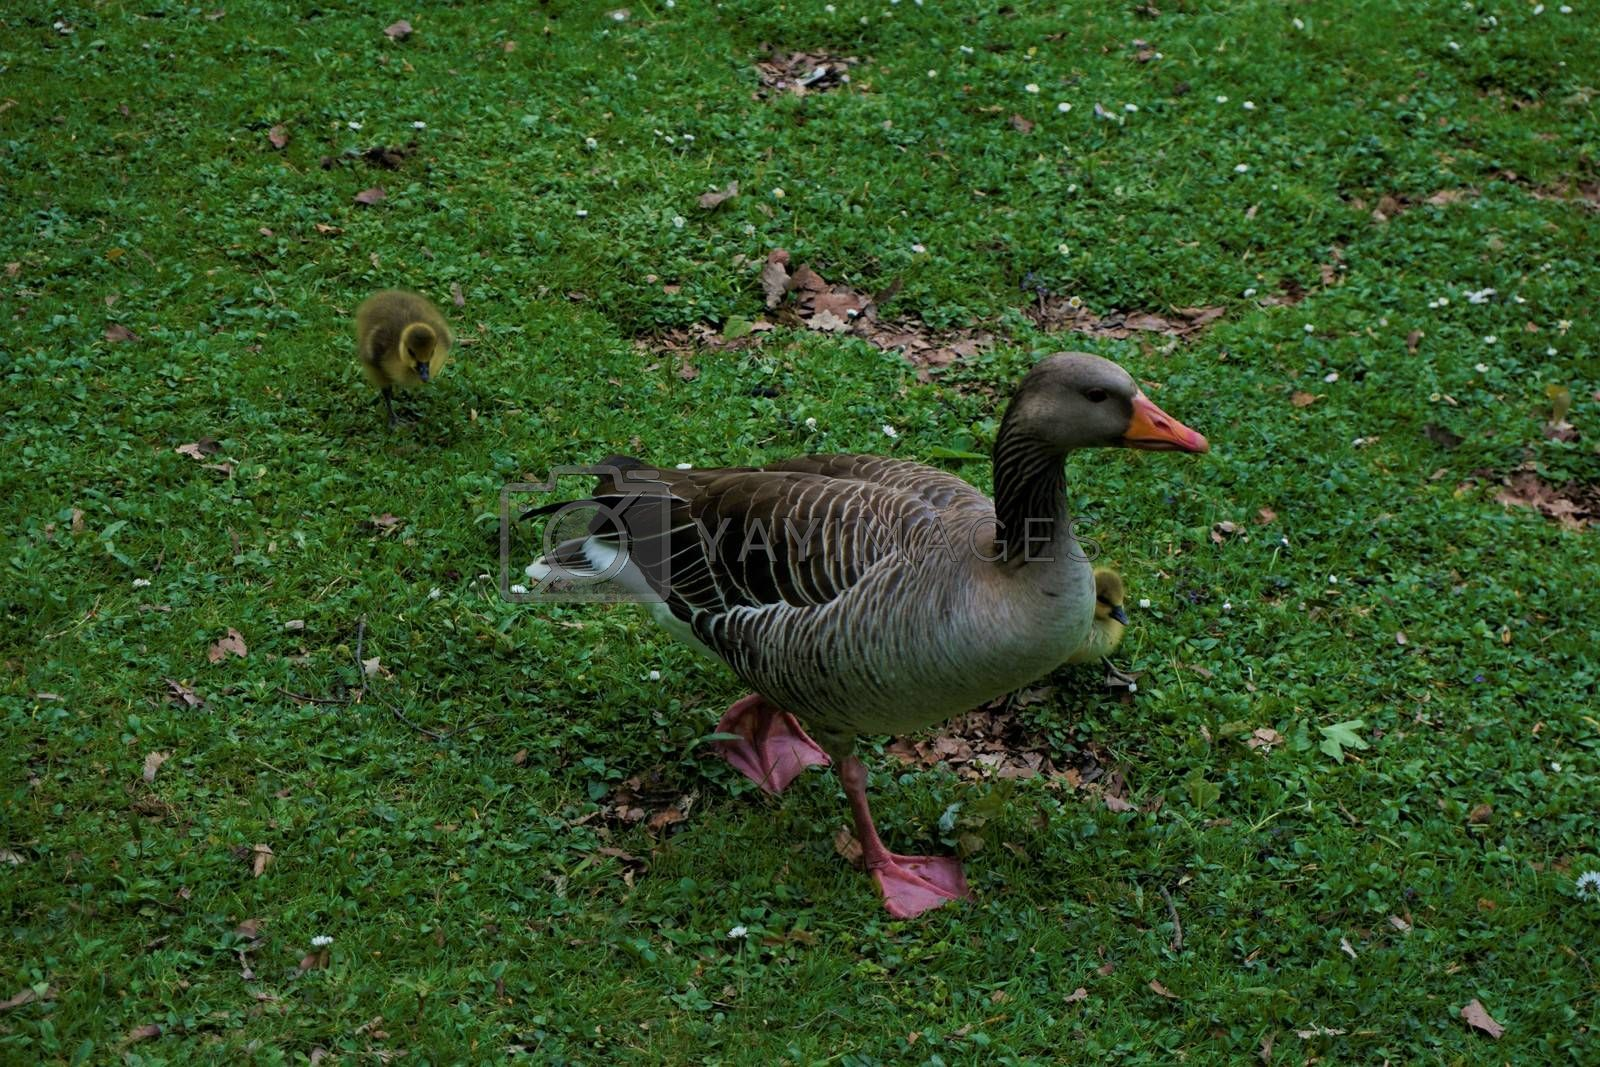 Greylag goose with a biddy on a meadow in Munich